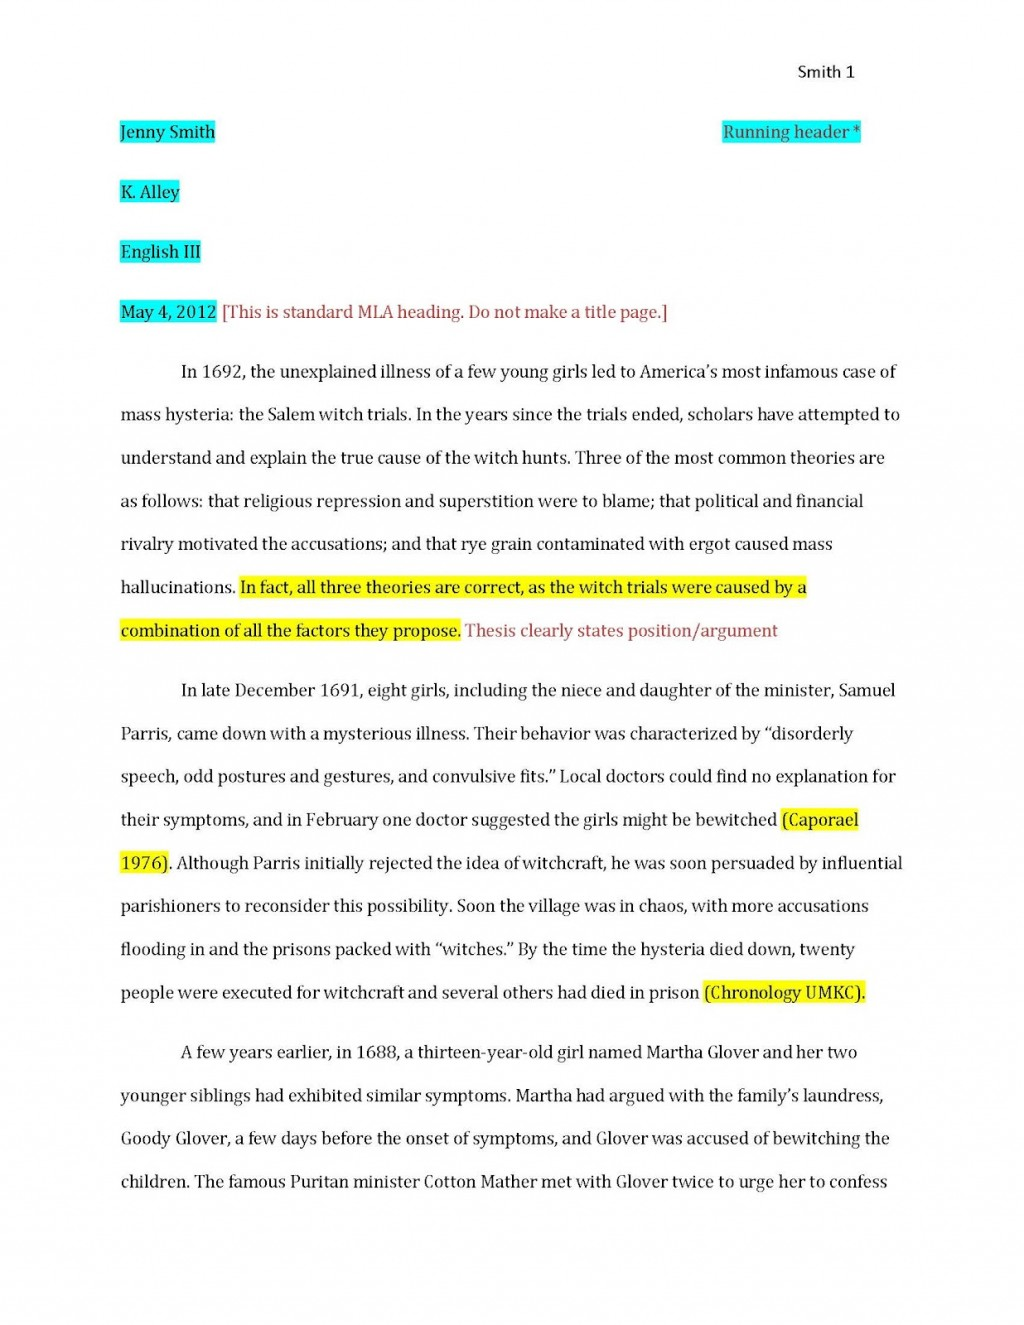 006 Examplepaper Page 1 Research Paper Citations Amazing For How To Make Bibliography Do Write Large